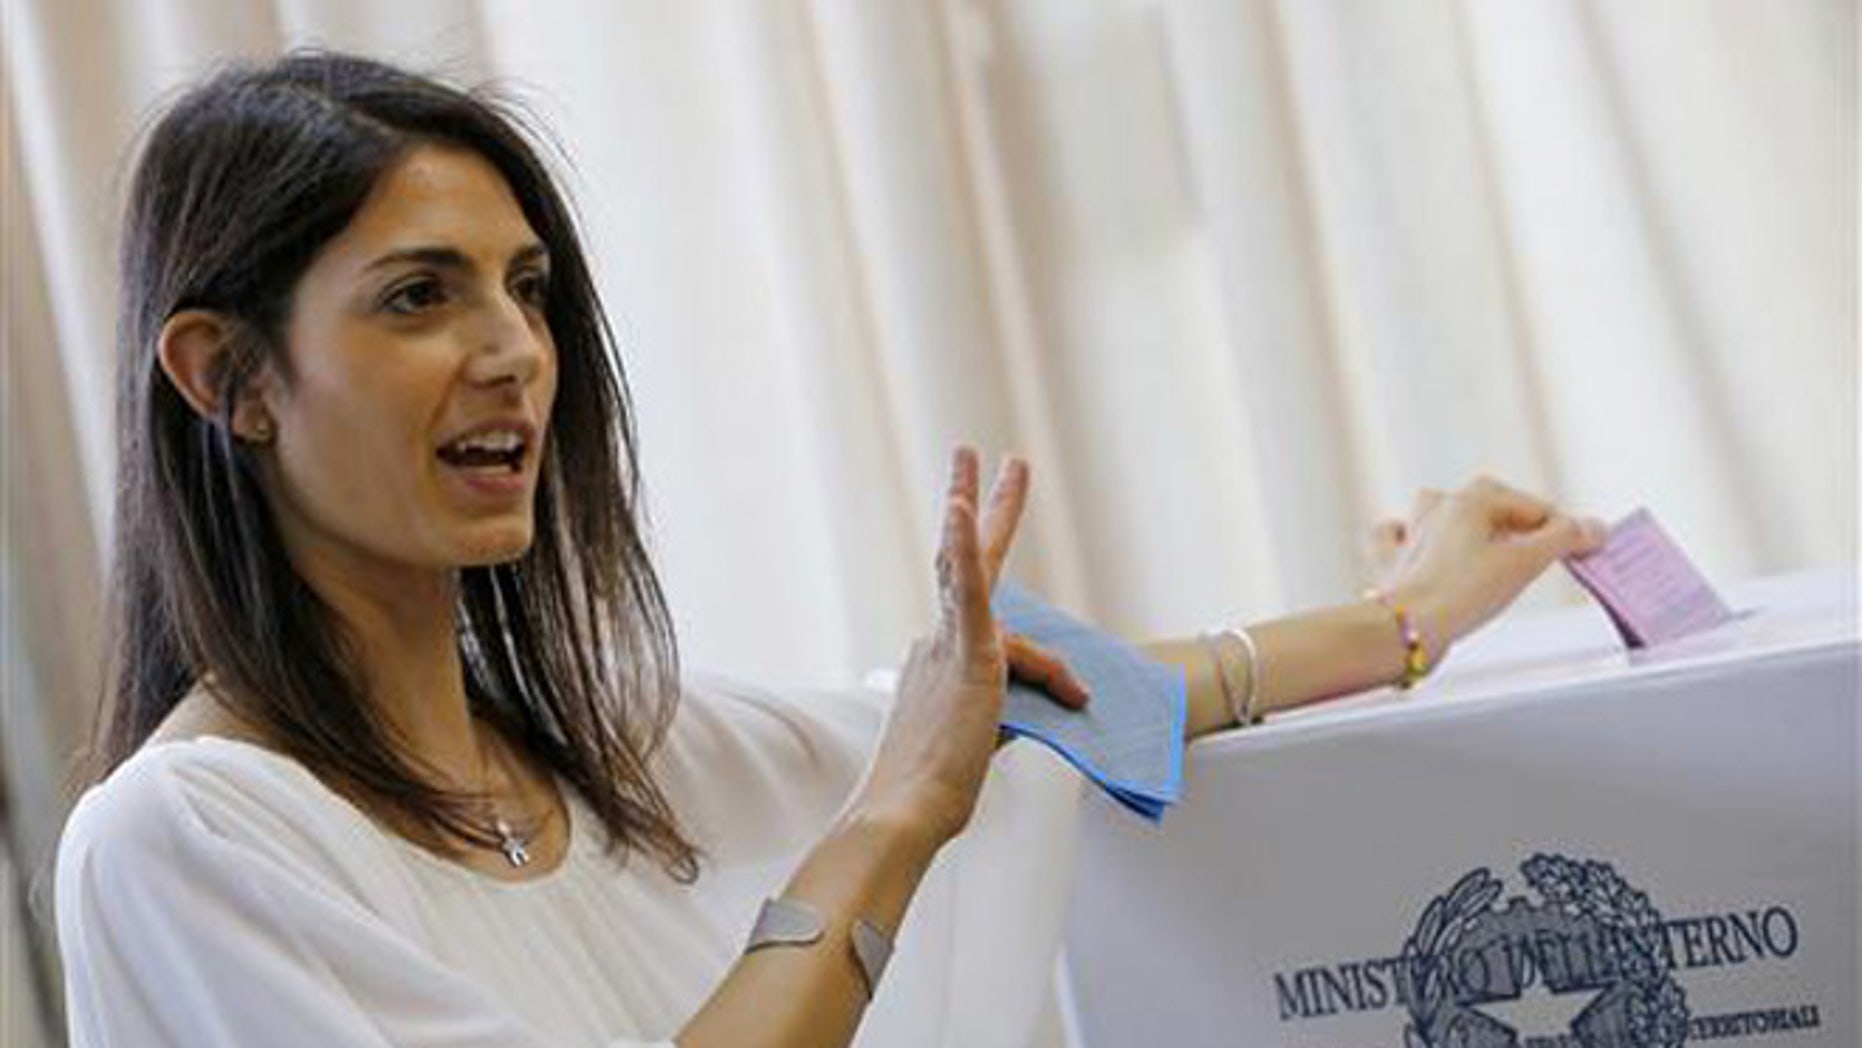 Anti-establishment 5-Star Movement (M5S) candidate as Rome's mayor Virginia Raggi poses for photographers as she casts her ballot in polling station in Rome, Sunday, June 19, 2016.